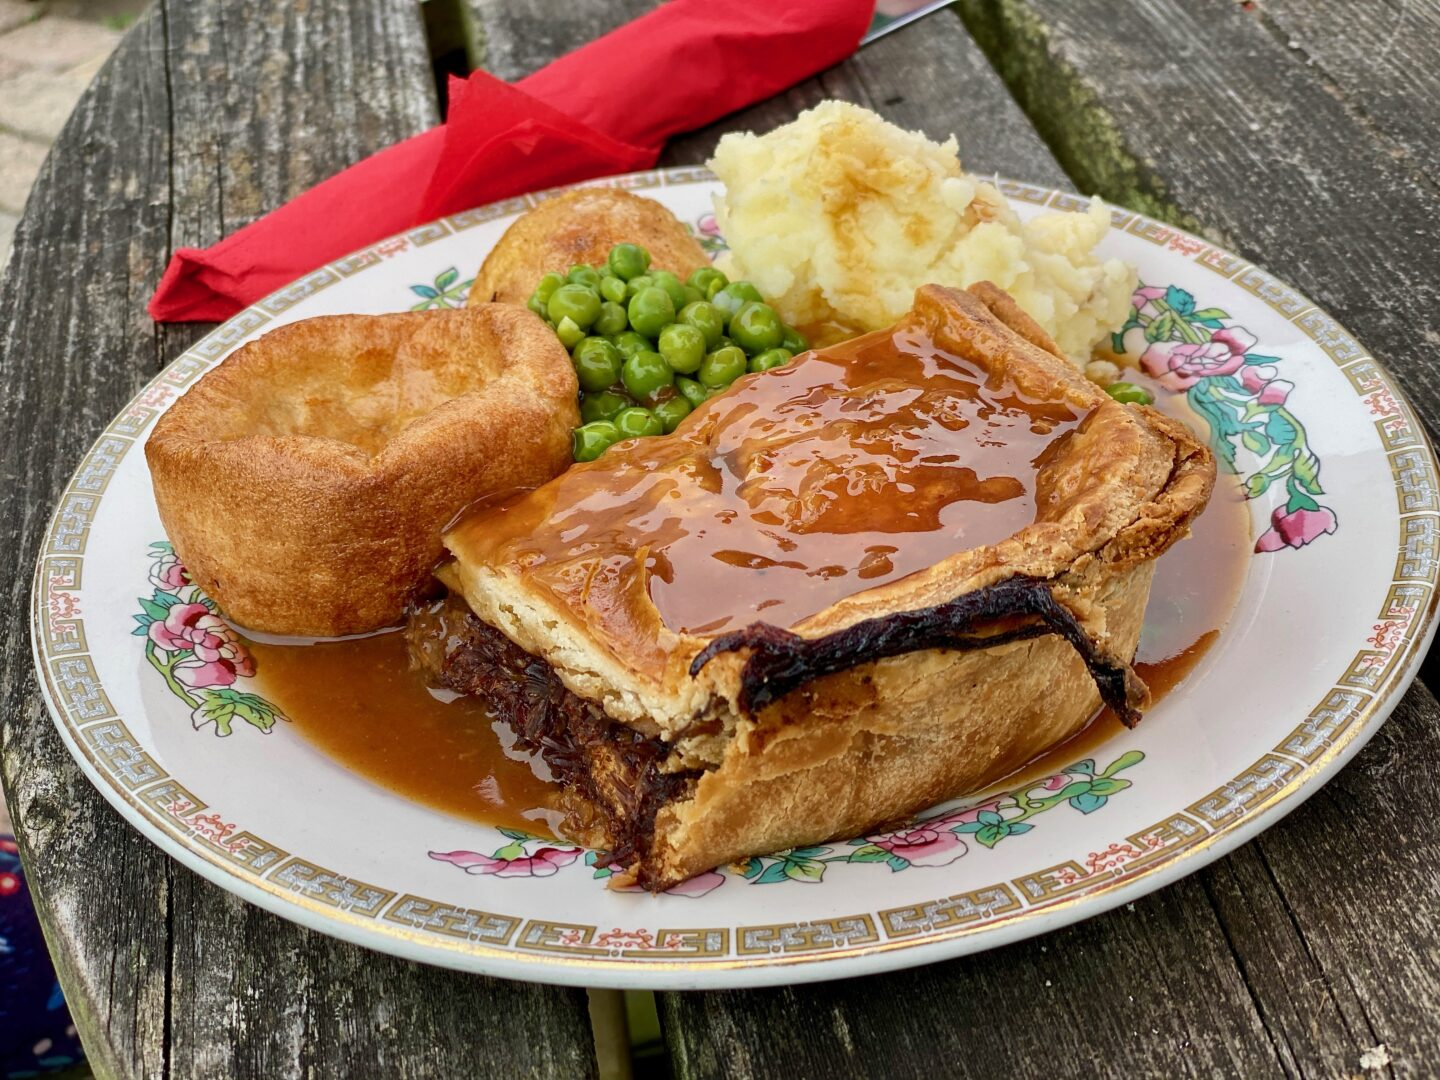 Pie, mash, peas, yorkshire pudding and gravy on a plate